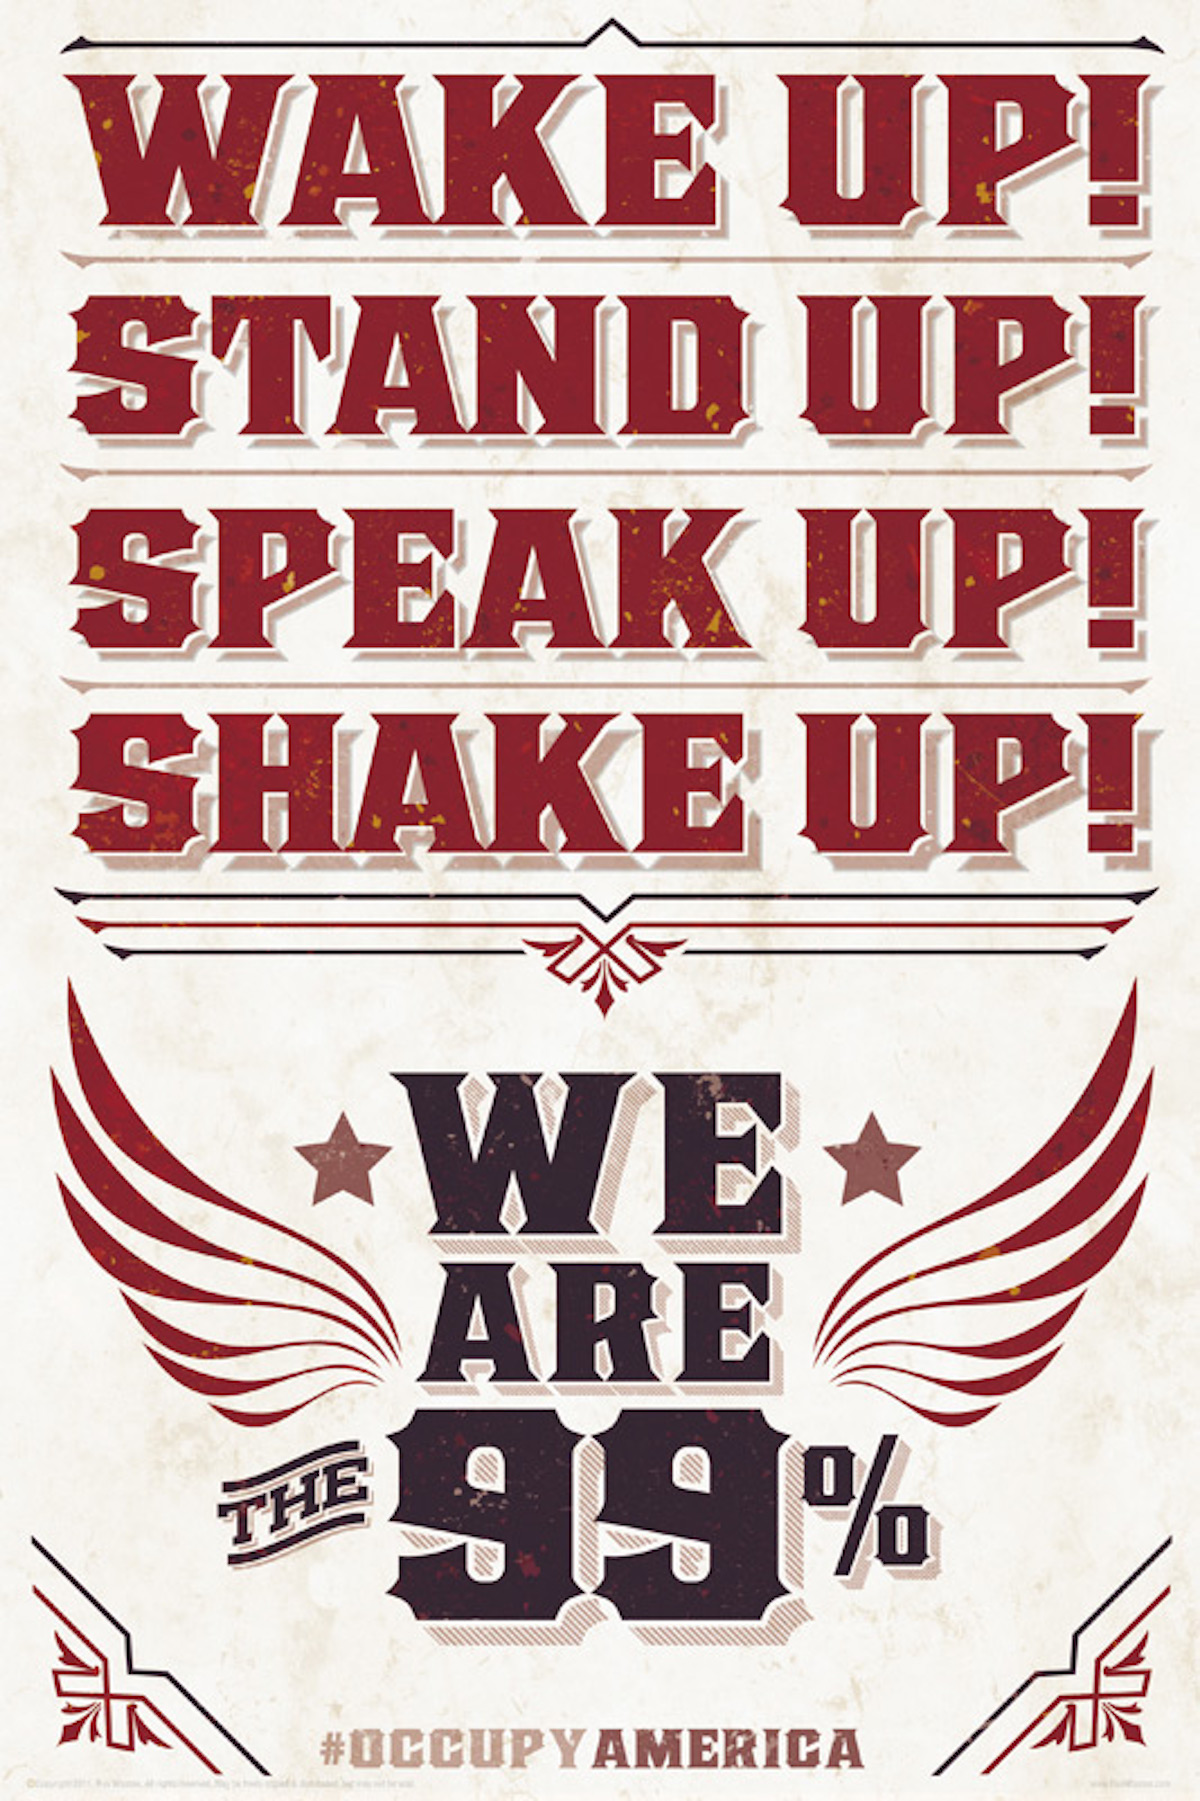 OccupyAmerica Poster: Wake Up! Stand Up! Shake Up! by Rus Wooton